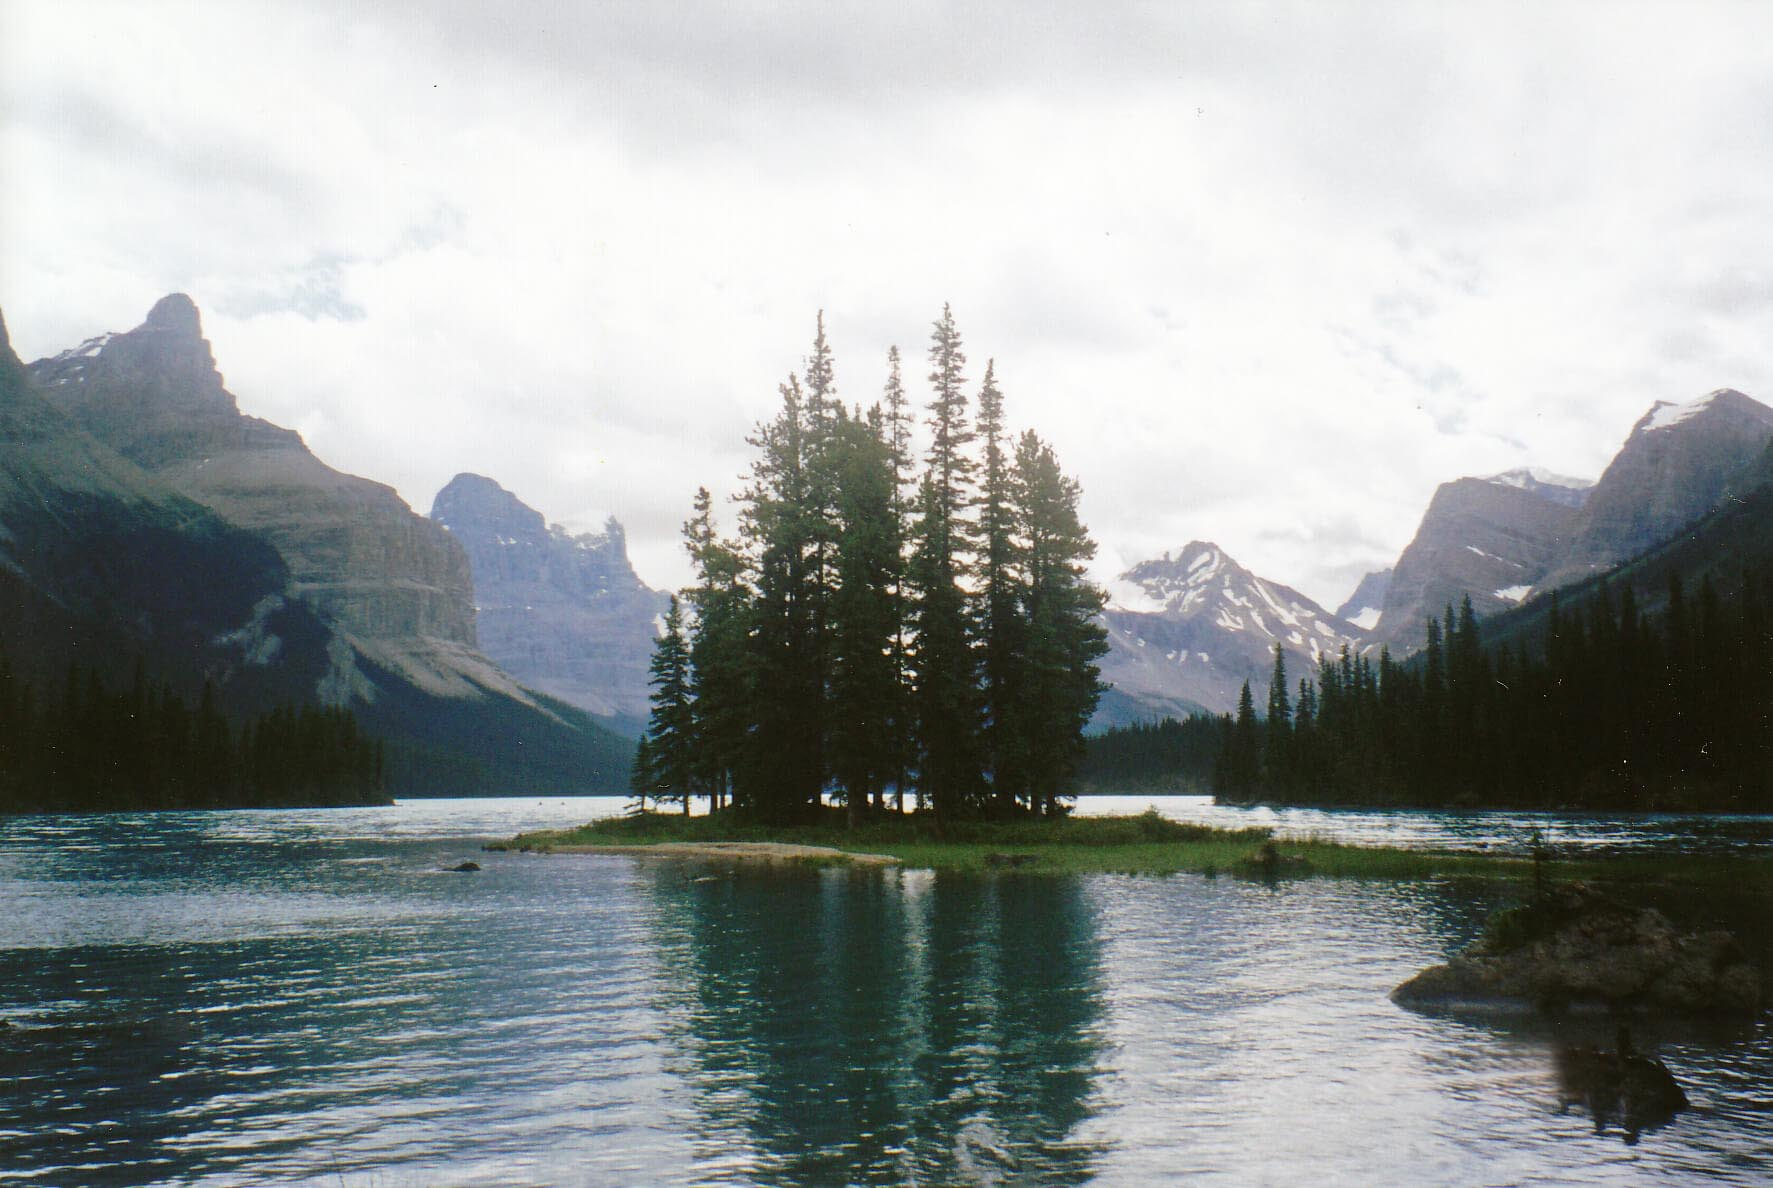 Isle of Spirit, Maligne Lake, Jasper-Nationalpark, Alberta, Kanada